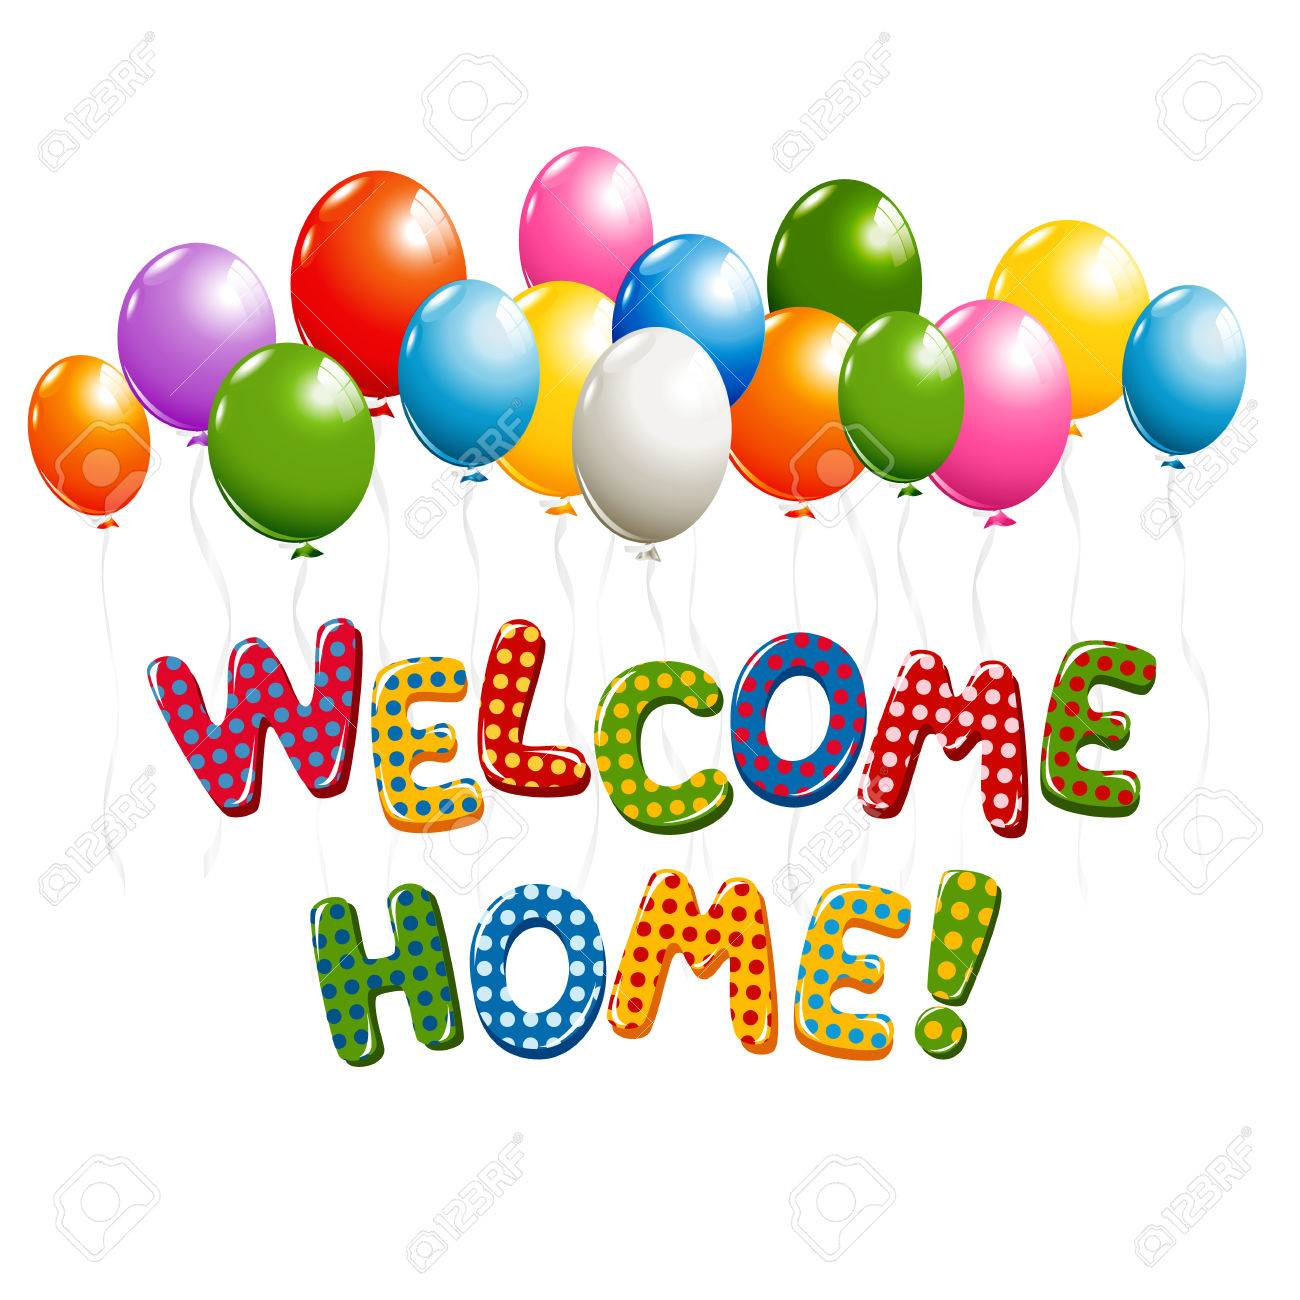 Welcome Home Text In Colorful Polka Dot Design With Balloons Royalty ...